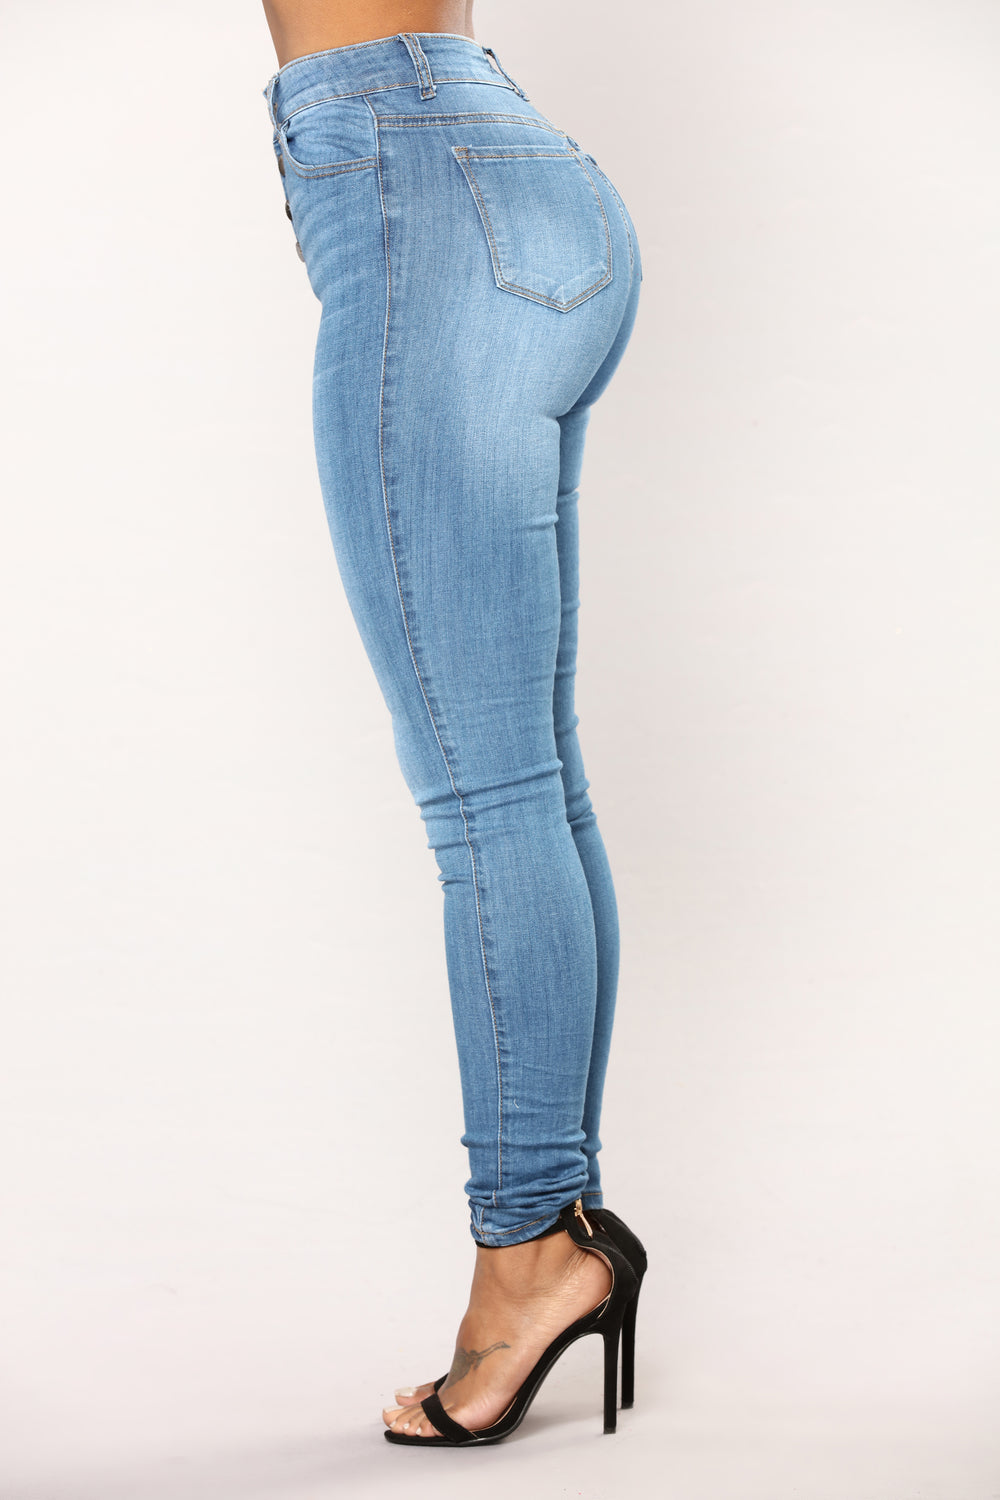 Lover Lay Low Skinny Jeans - Medium Blue Wash